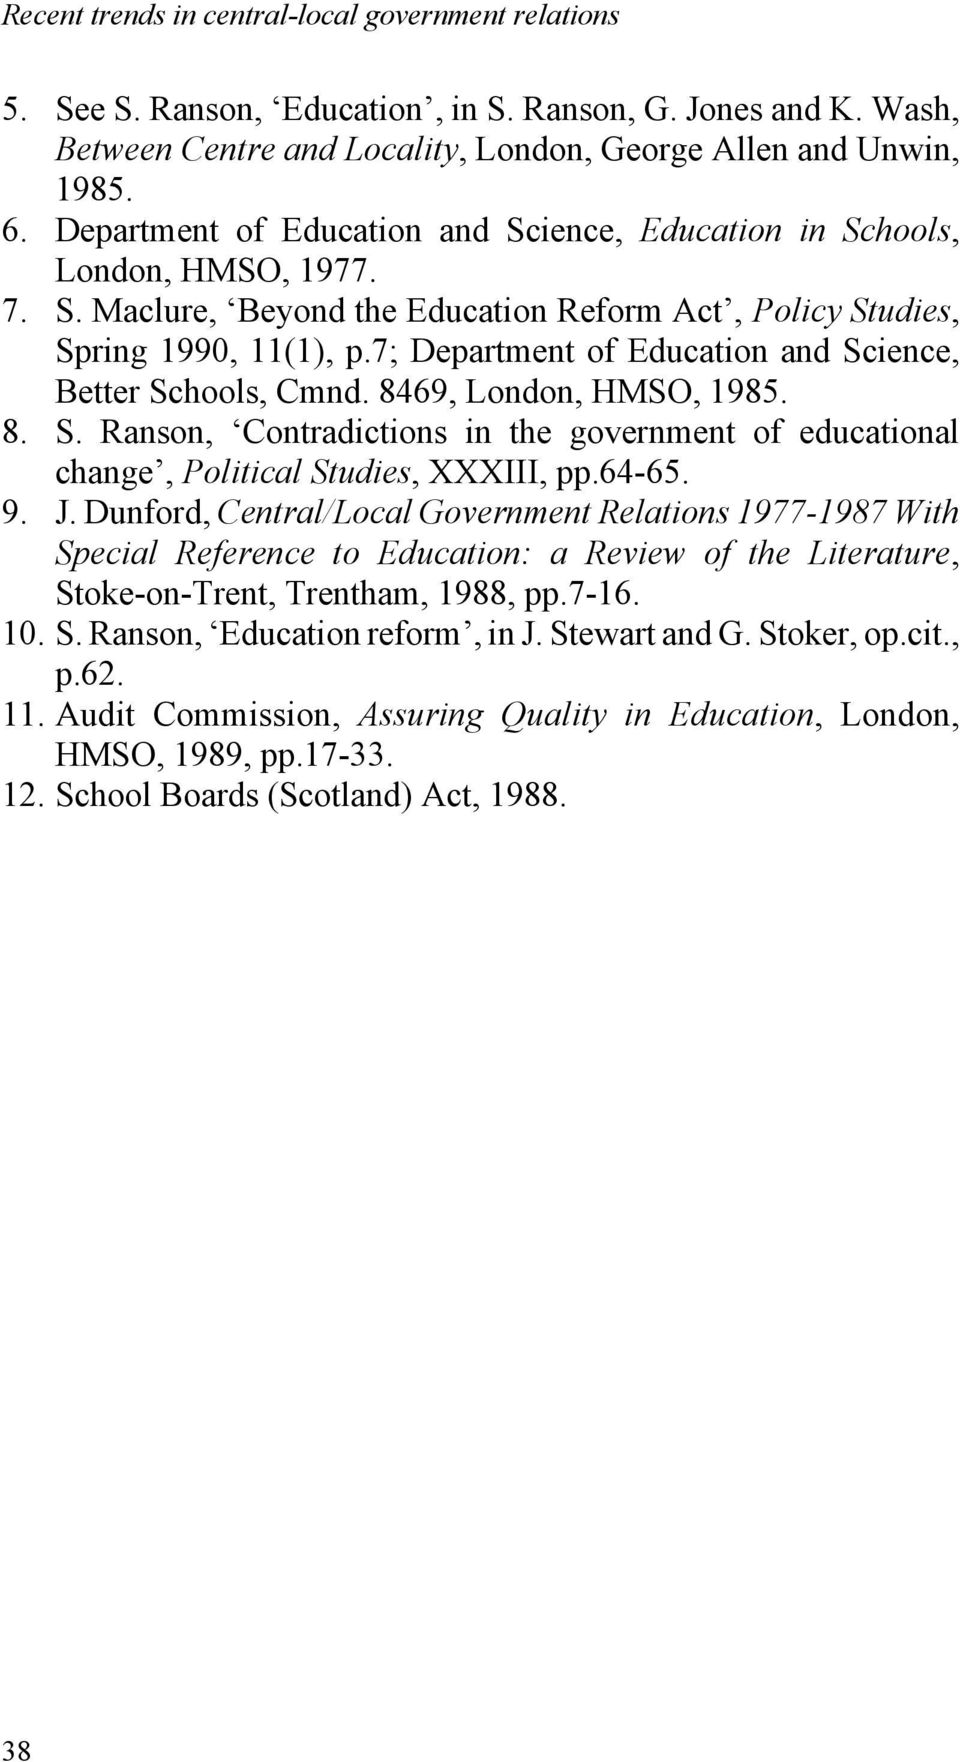 7; Department of Education and Science, Better Schools, Cmnd. 8469, London, HMSO, 1985. 8. S. Ranson, Contradictions in the government of educational change, Political Studies, XXXIII, pp.64-65. 9. J.